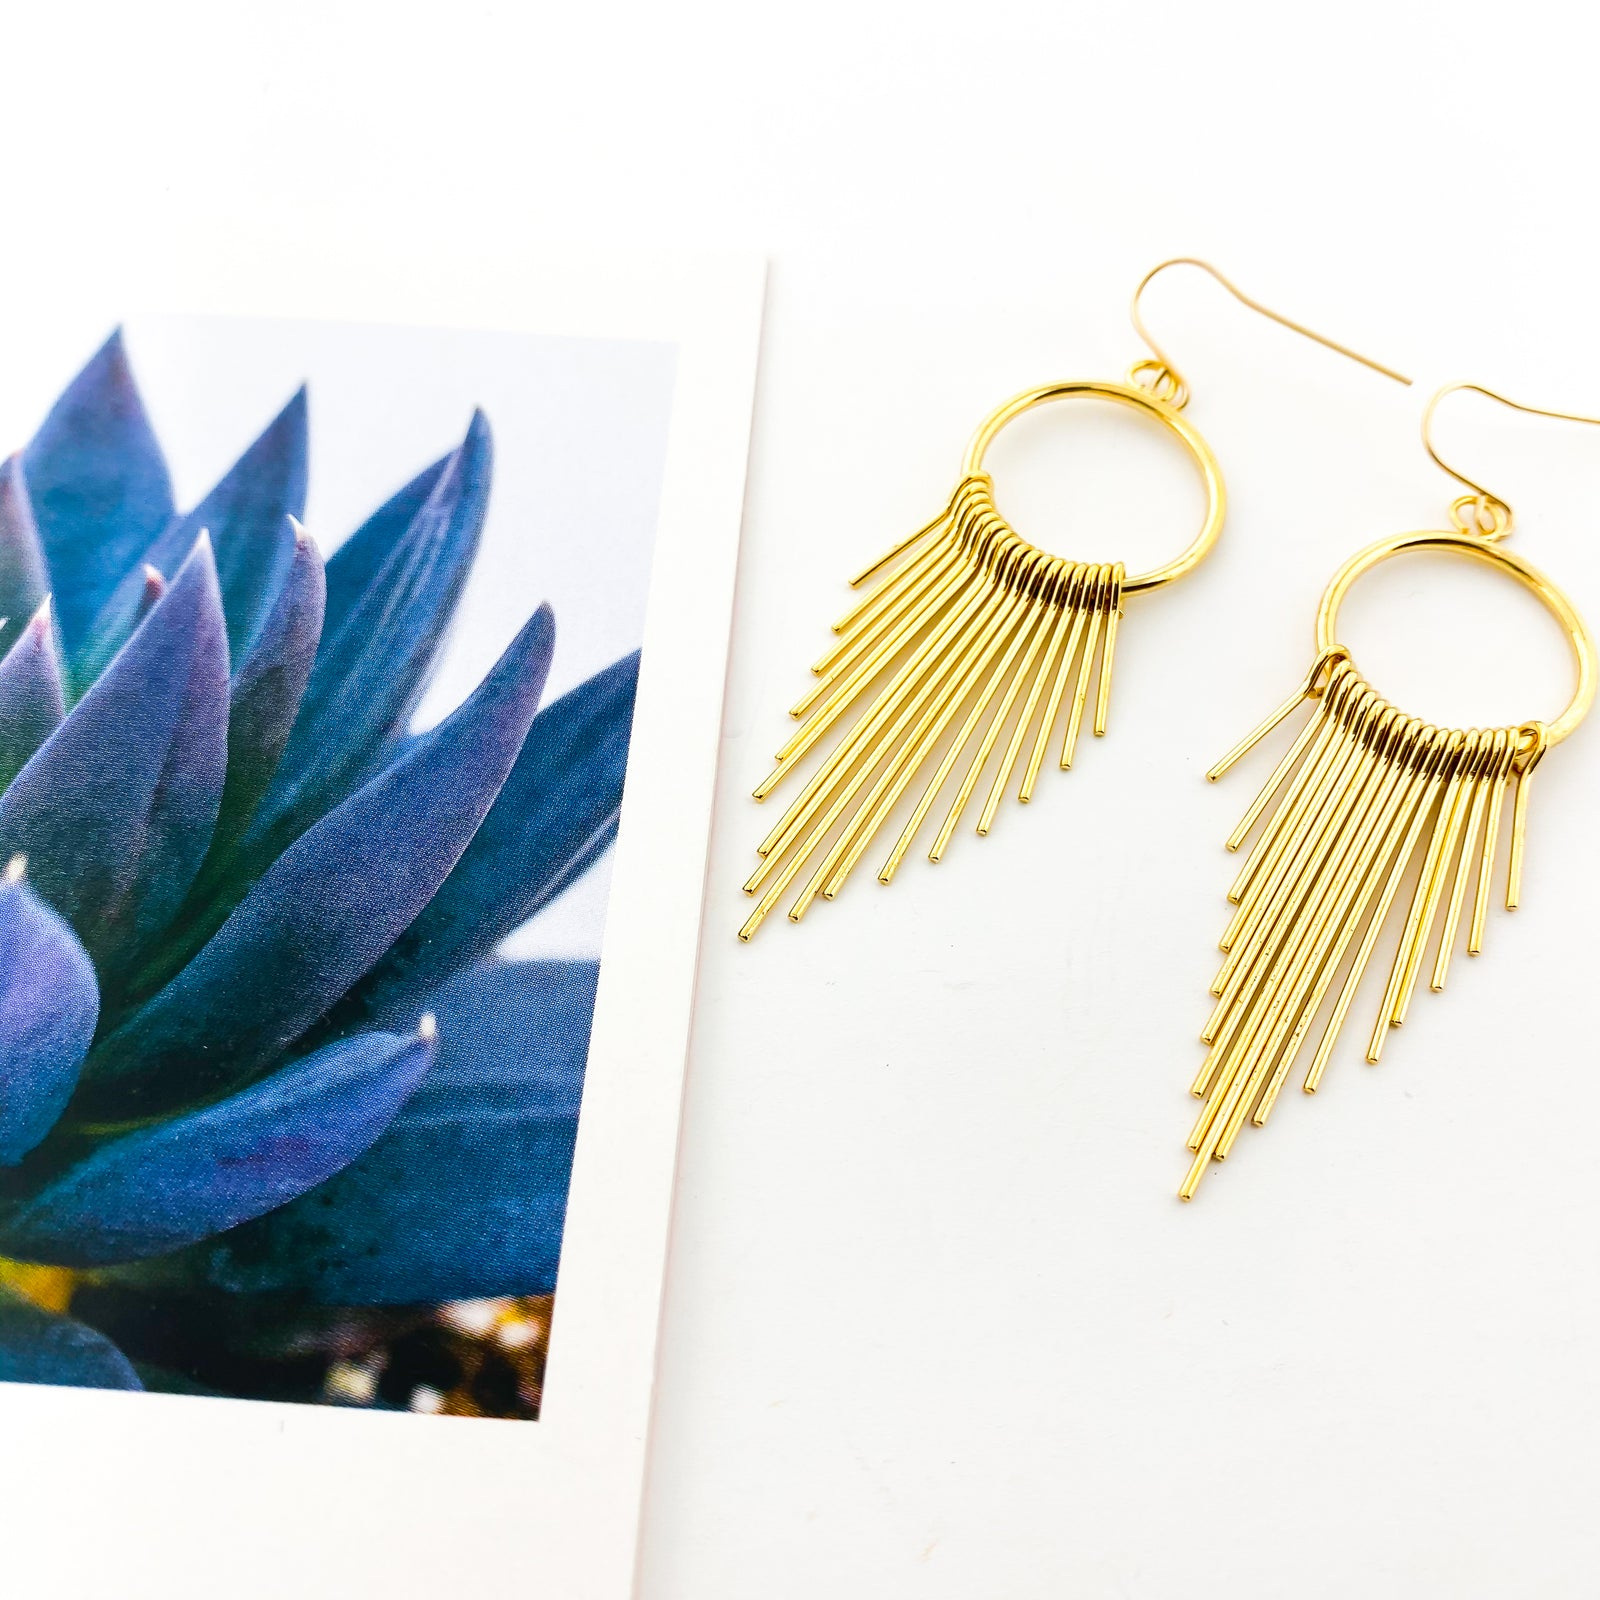 HANGING BAR FRINGE EARRINGS | 14K GOLD-FILLED